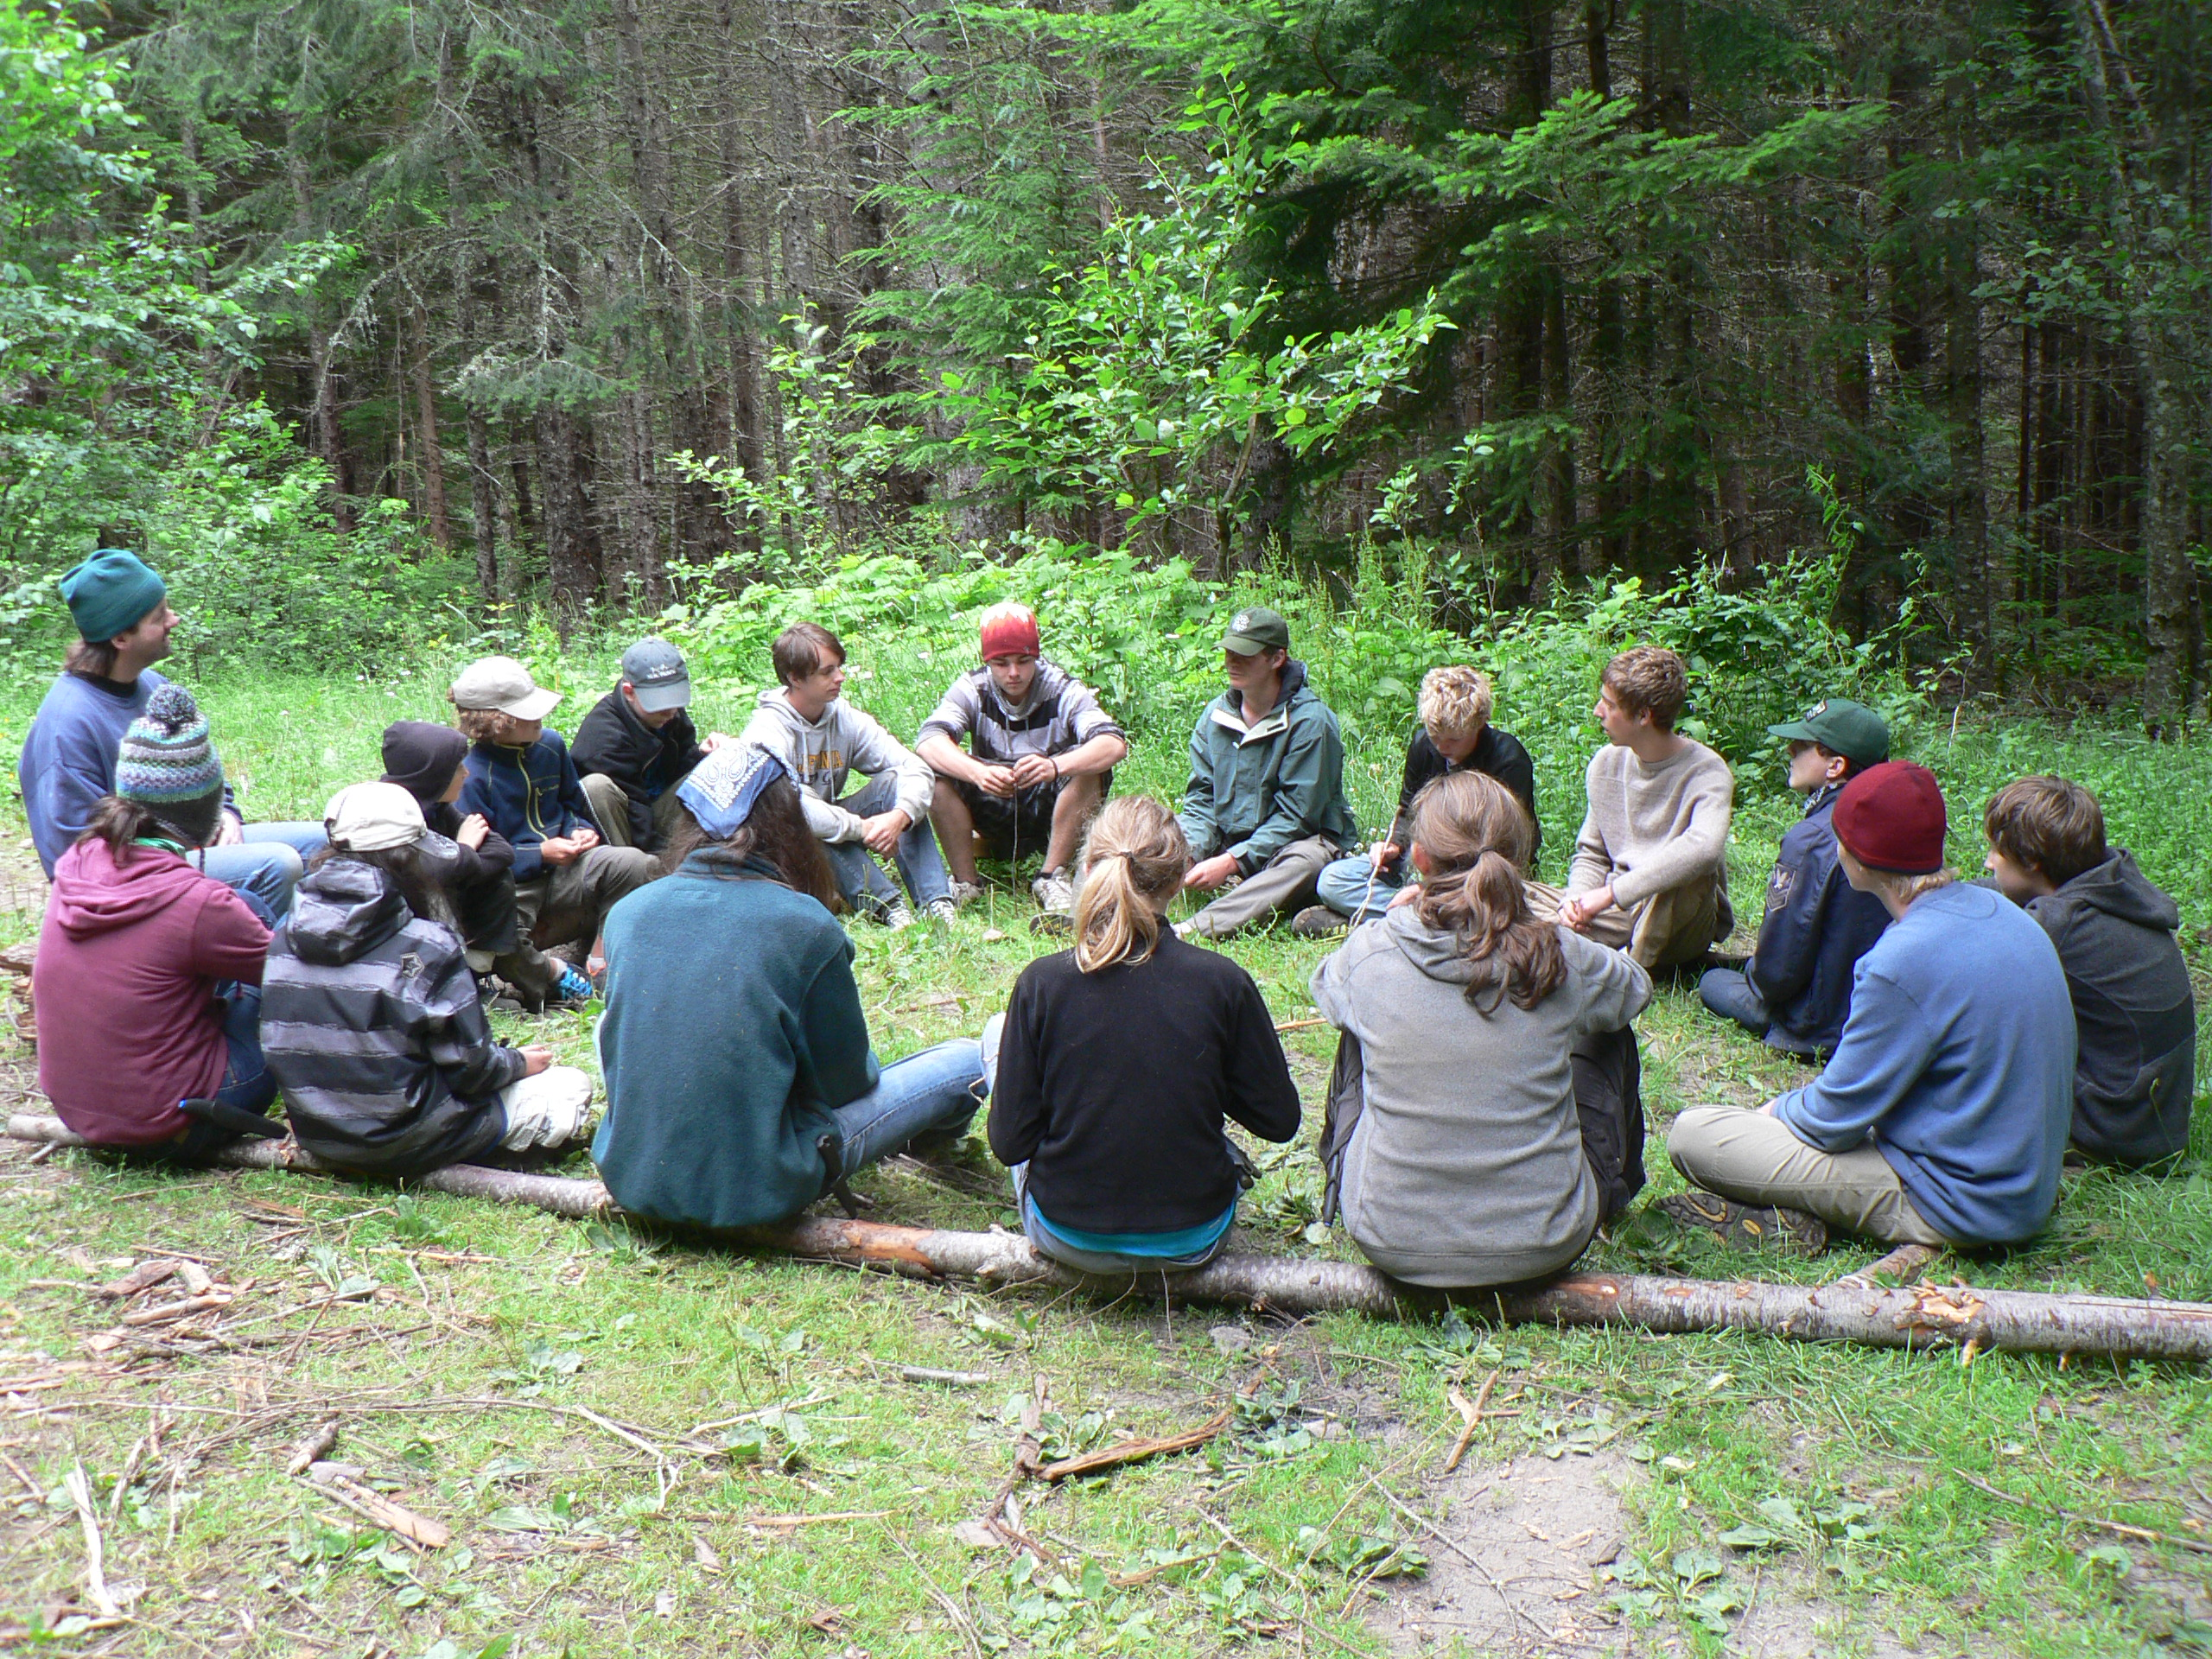 Survivalists Circle up for a Debrief after an Exhilirating Trek